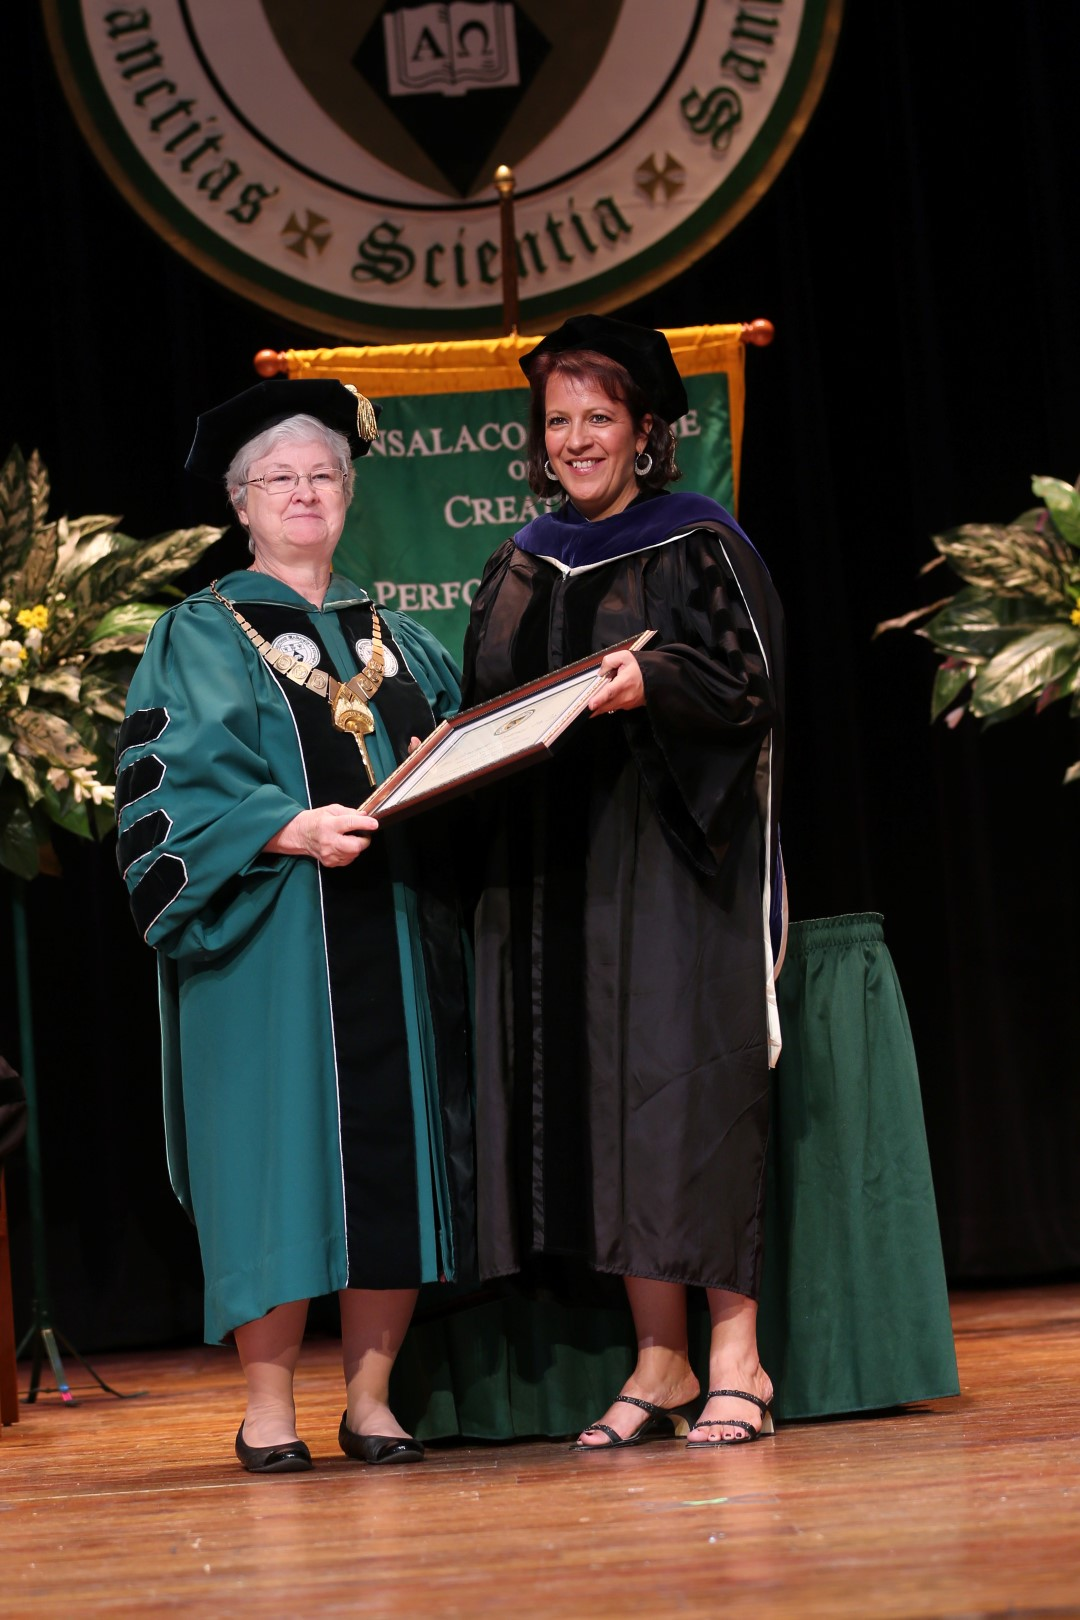 Sister Anne Munley, IHM, President of Marywood University, presents Dr. Ann Cerminaro-Costanzi with the 2013 CASE Award